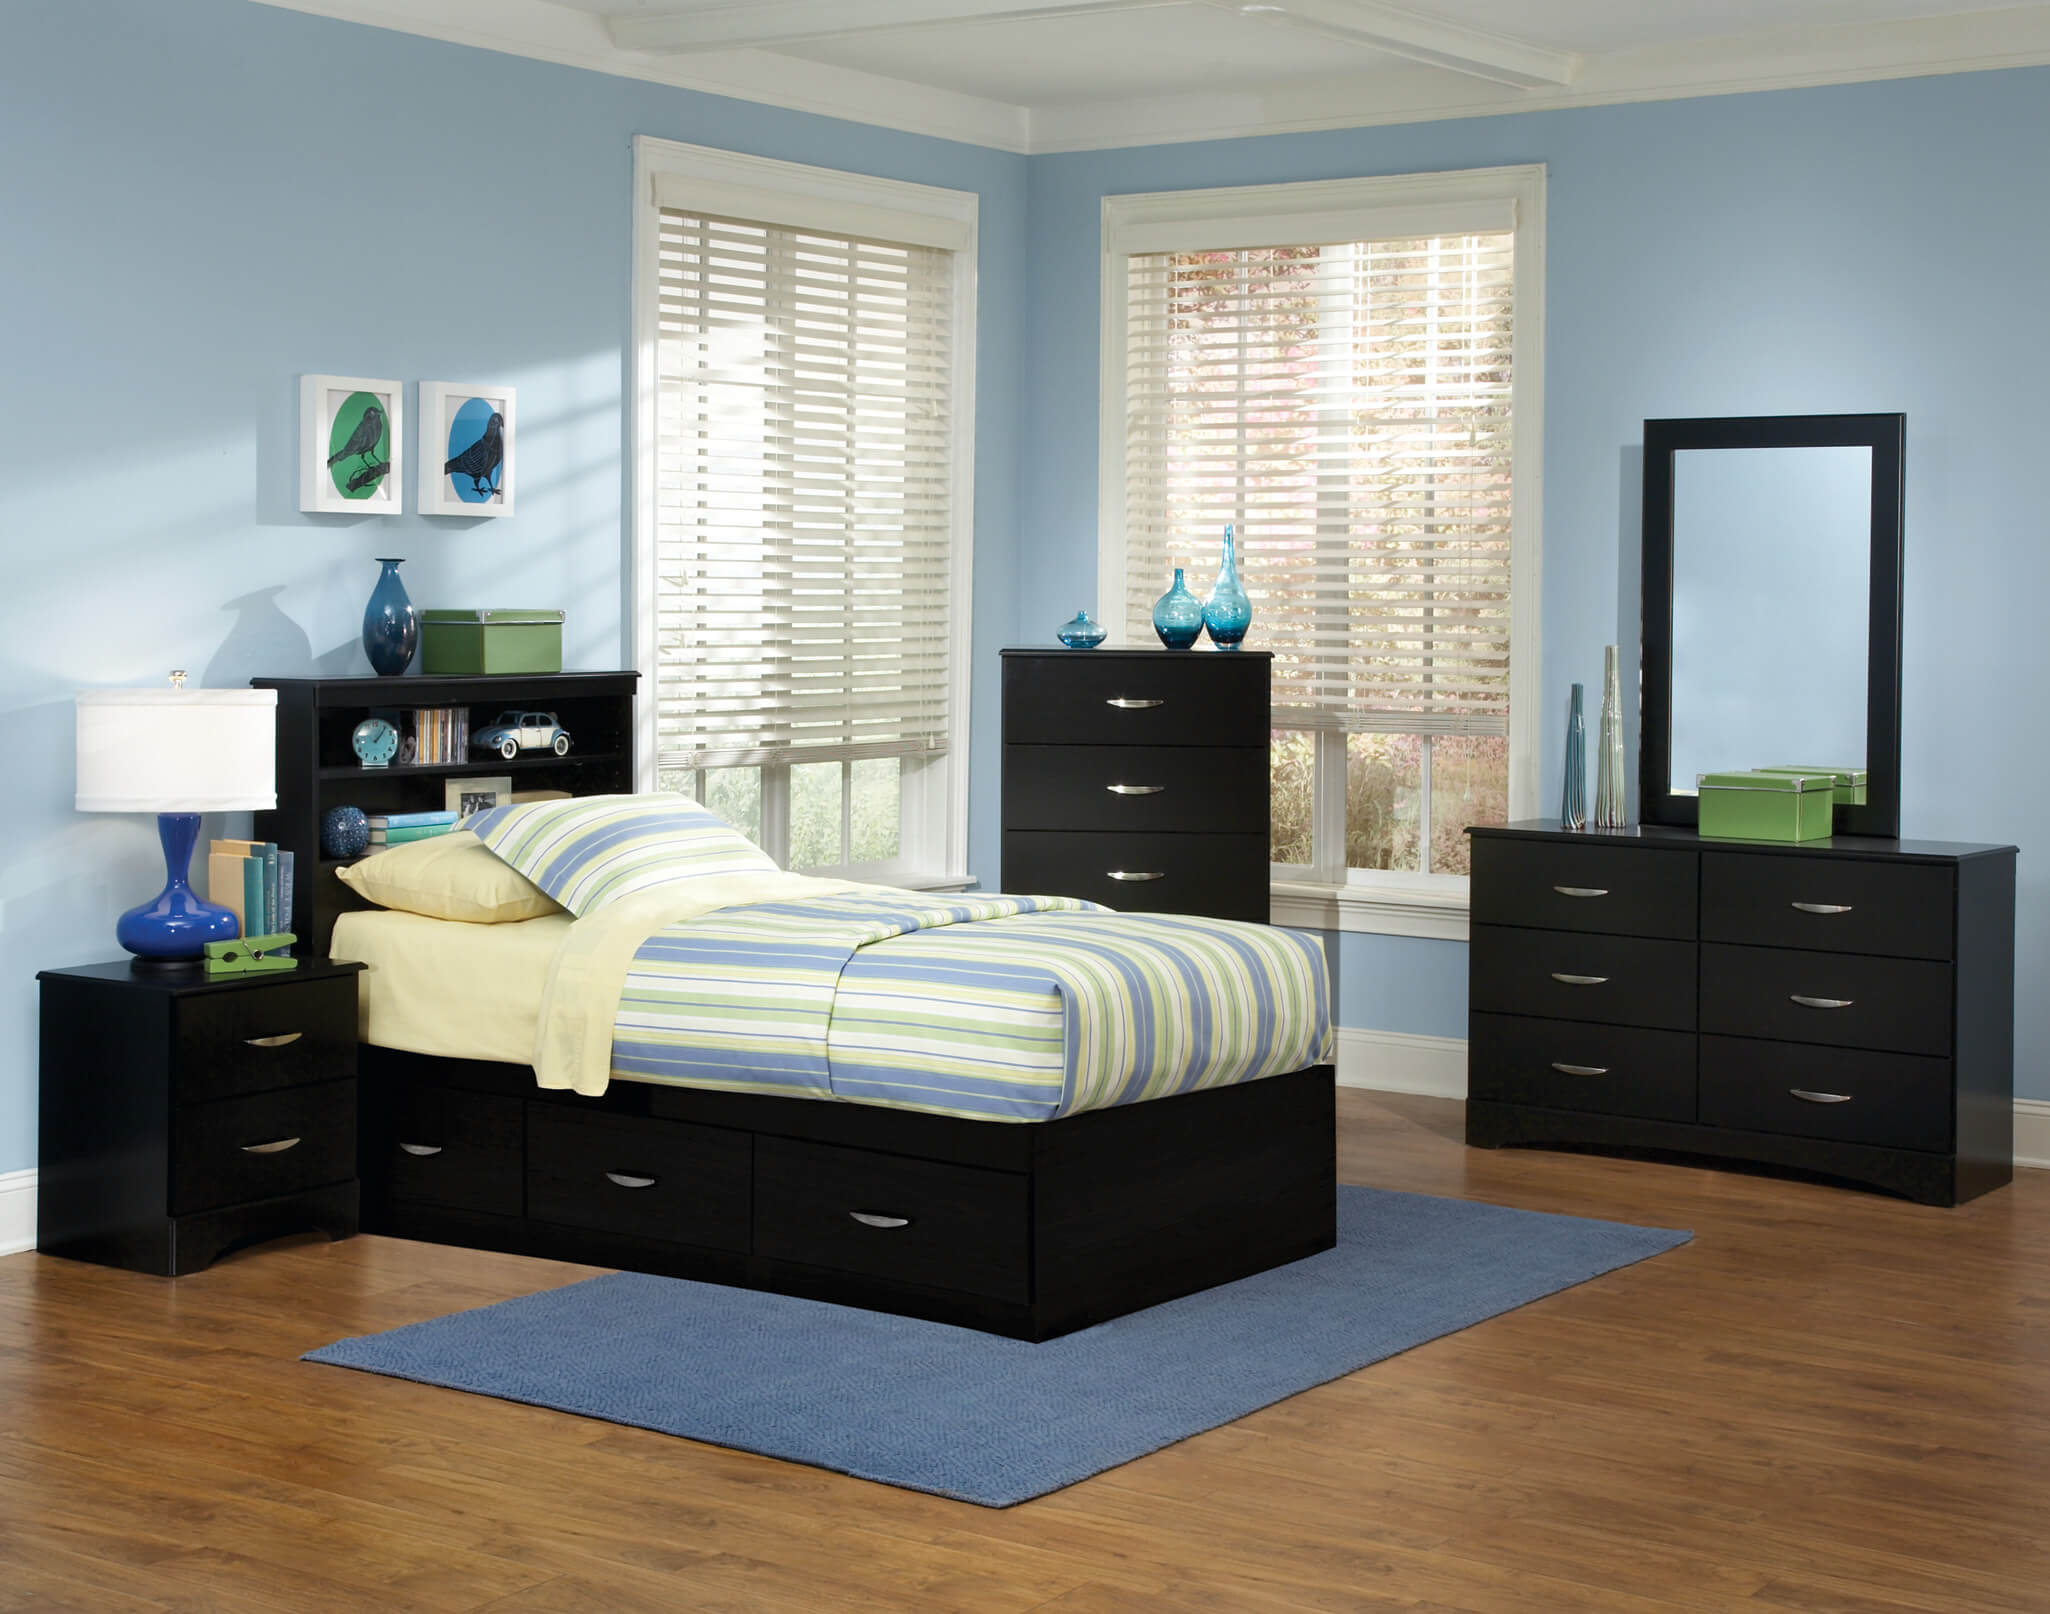 of with furniture bedroom decorating art regarding master gallery black ideas colors pic